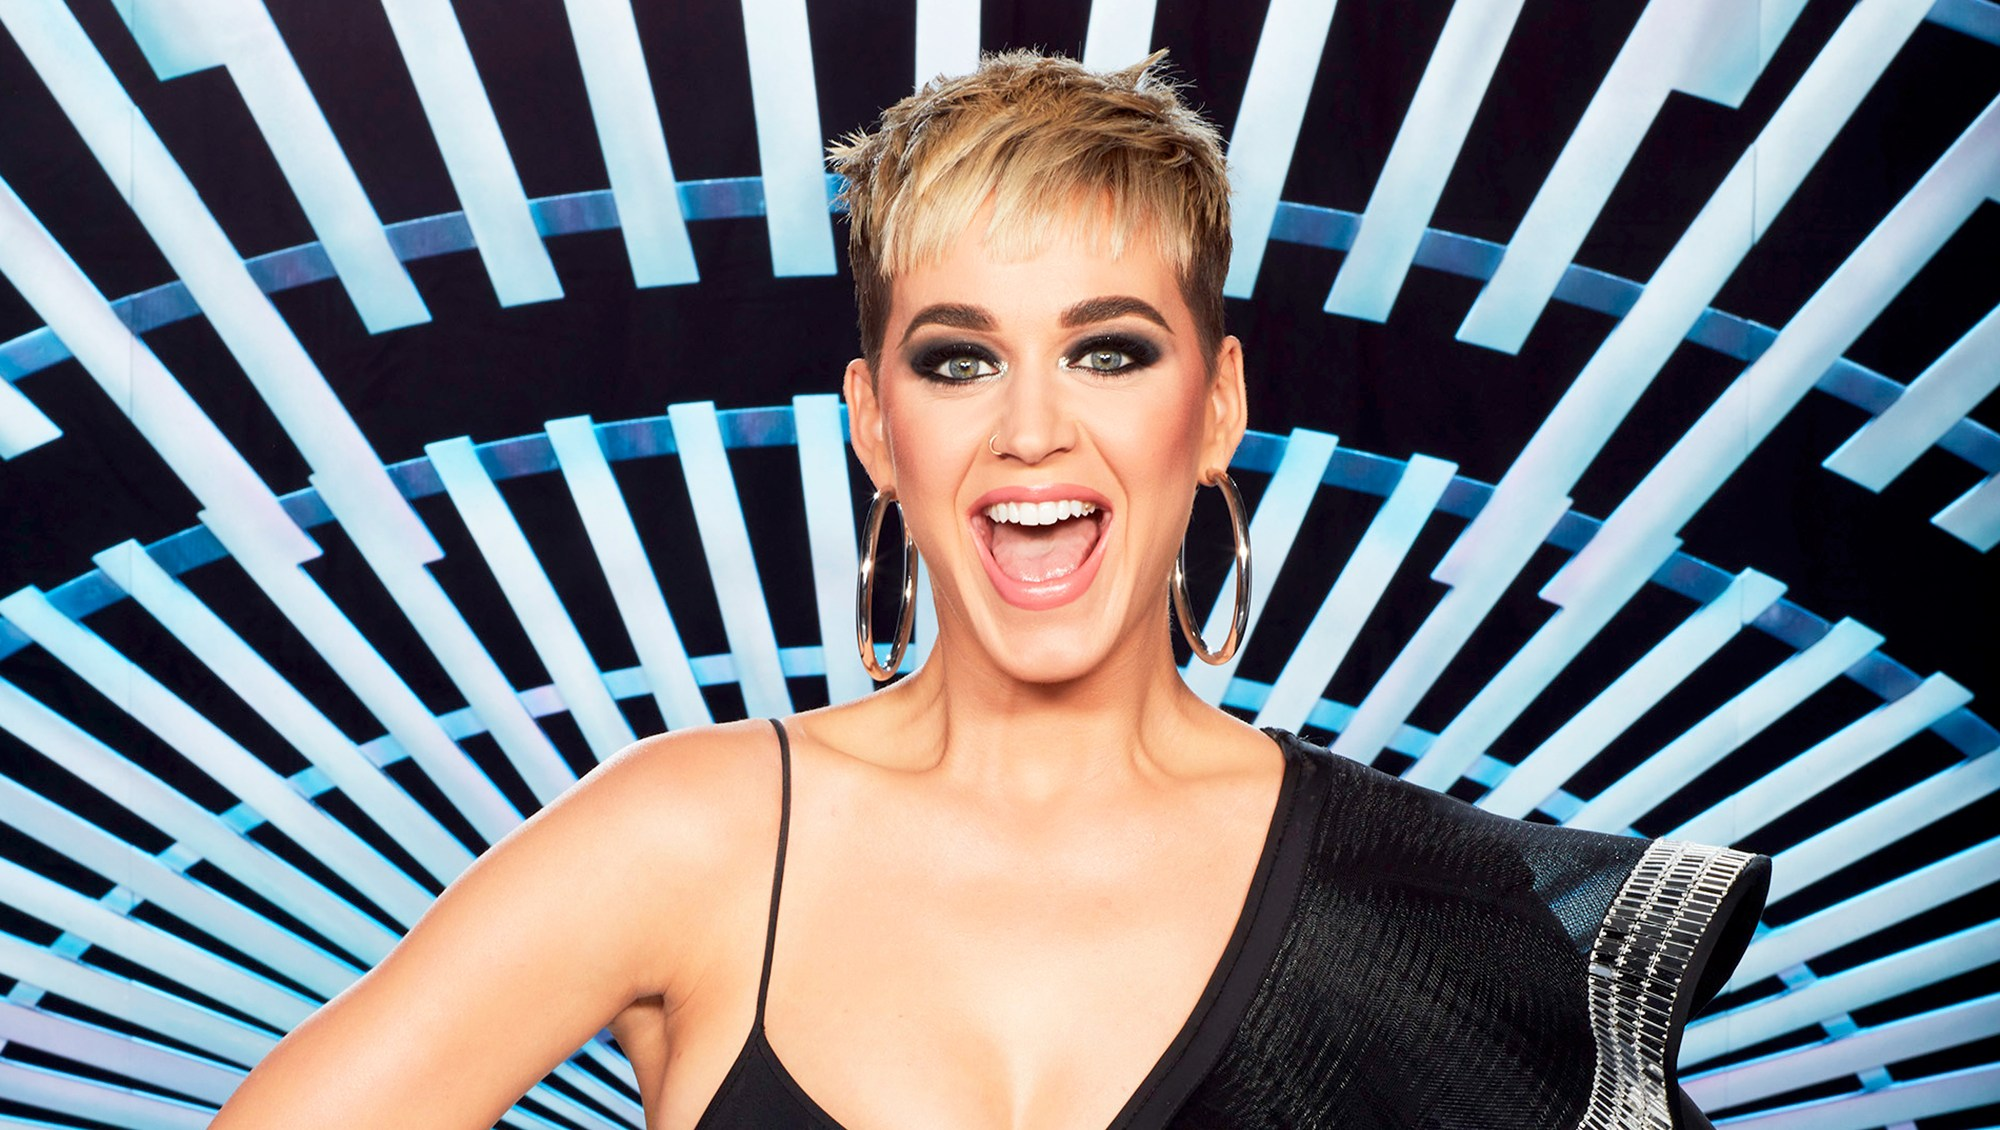 'American Idol' judge Katy Perry